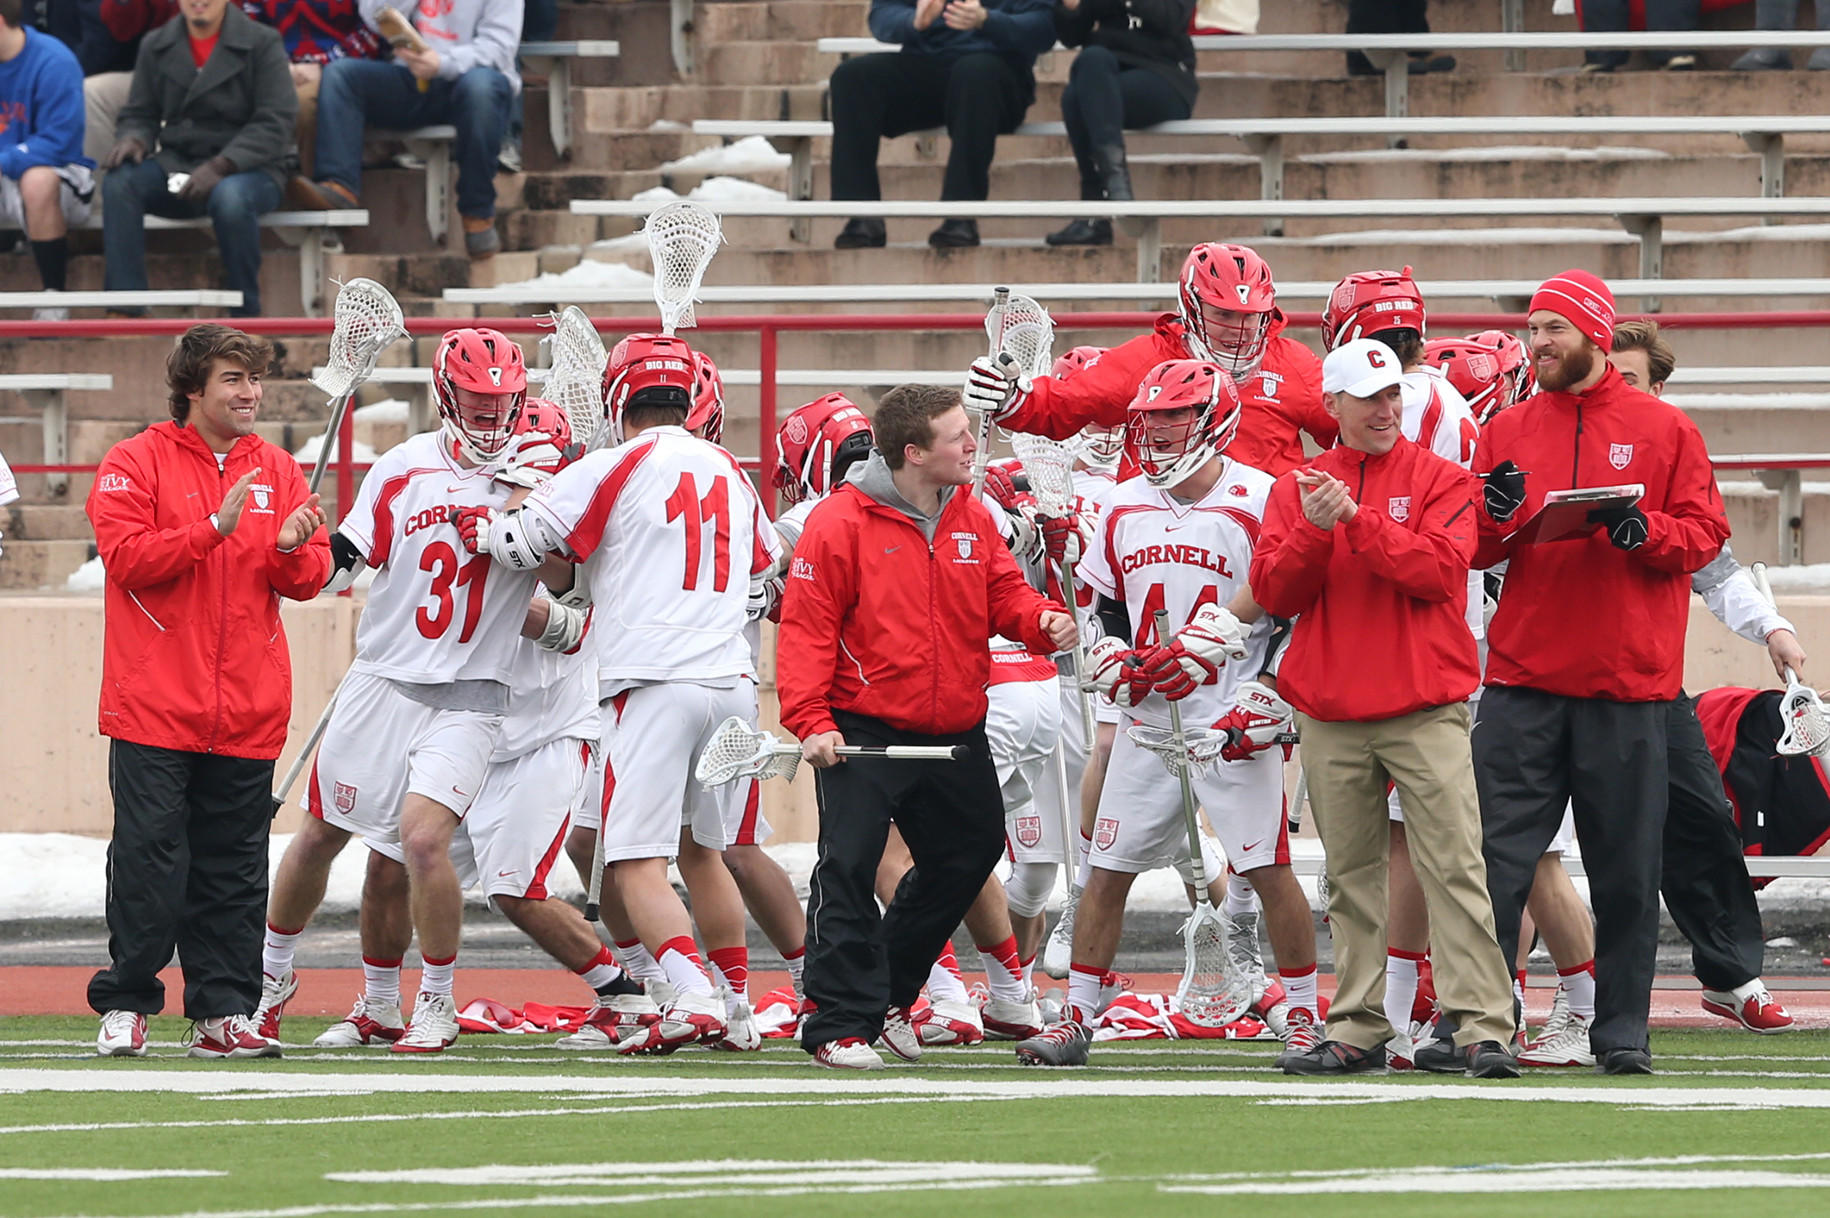 """Last year when I spoke with the team, I told them we all make mistakes,"" said Cornell interim head coach Kerwick (in white hat), who replaced Ben DeLuca in November 2013 after a hazing incident. ""I told them how I had learned so much from my mistake and it helped me grow as a person. I told them what defines a man is what you do after the mistakes and the direction we go from here will define us."""